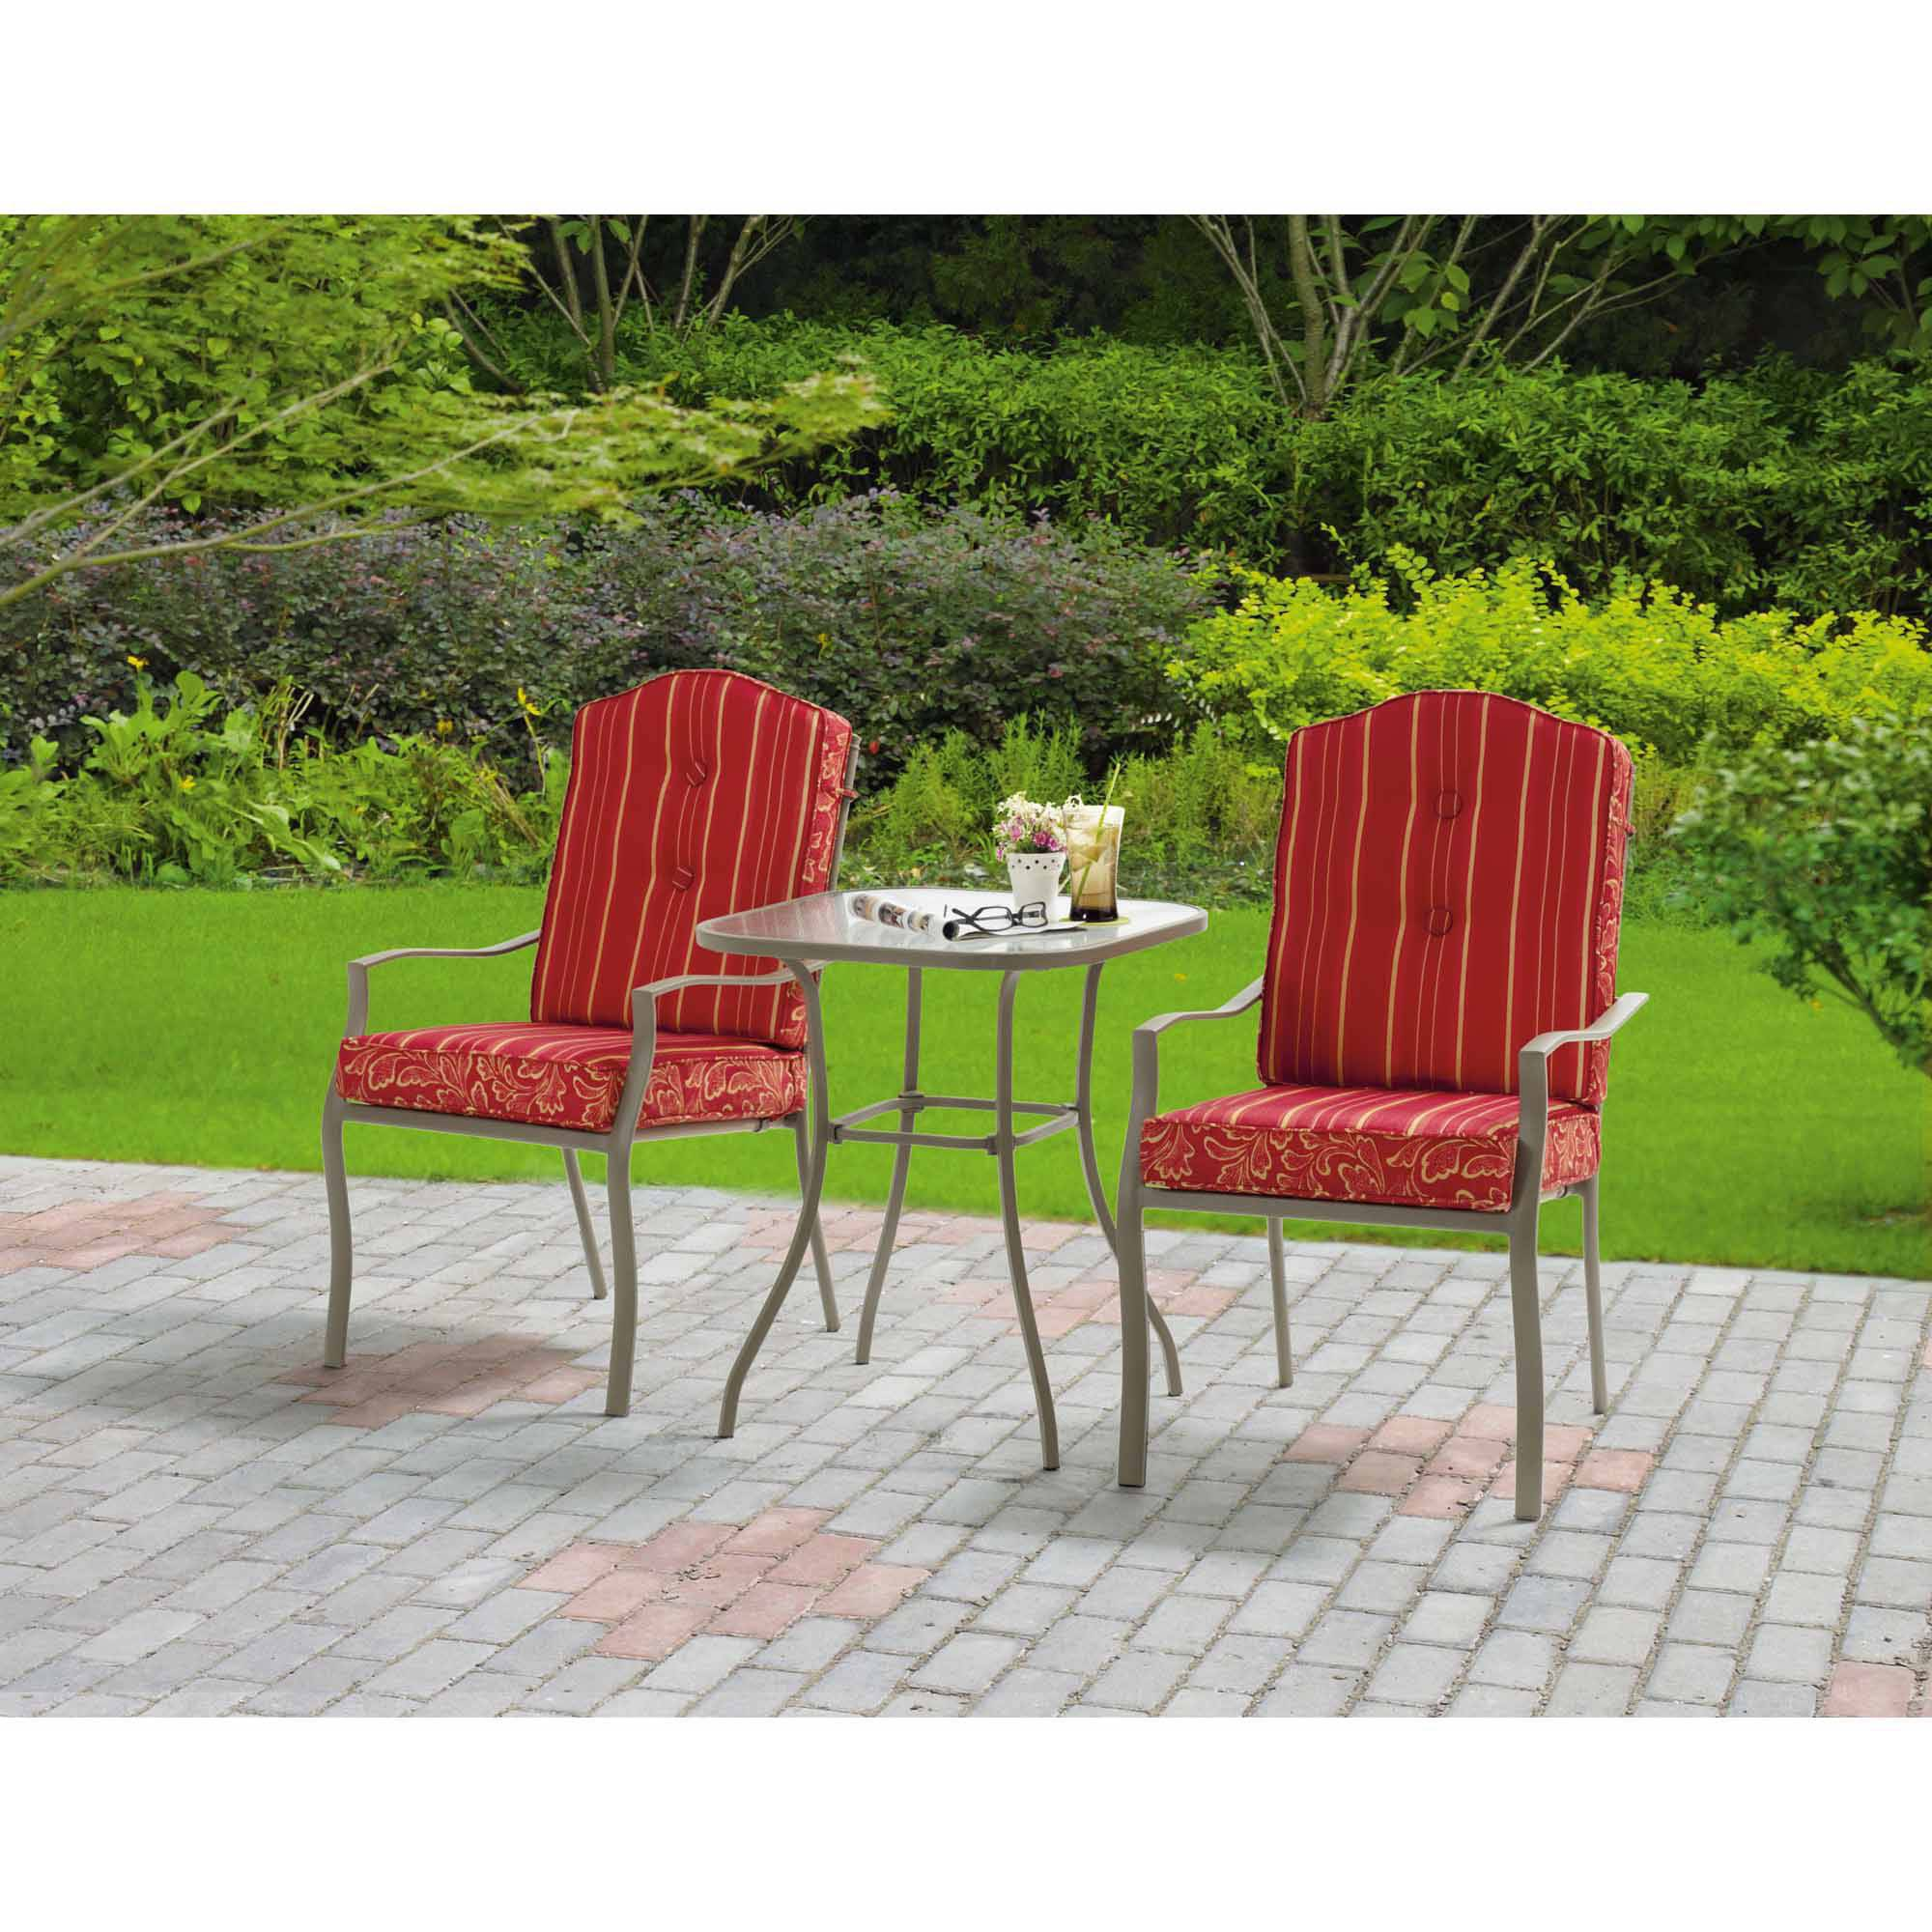 Mainstays Warner Heights 3-Piece Outdoor Bistro Set, Red, Seats 2